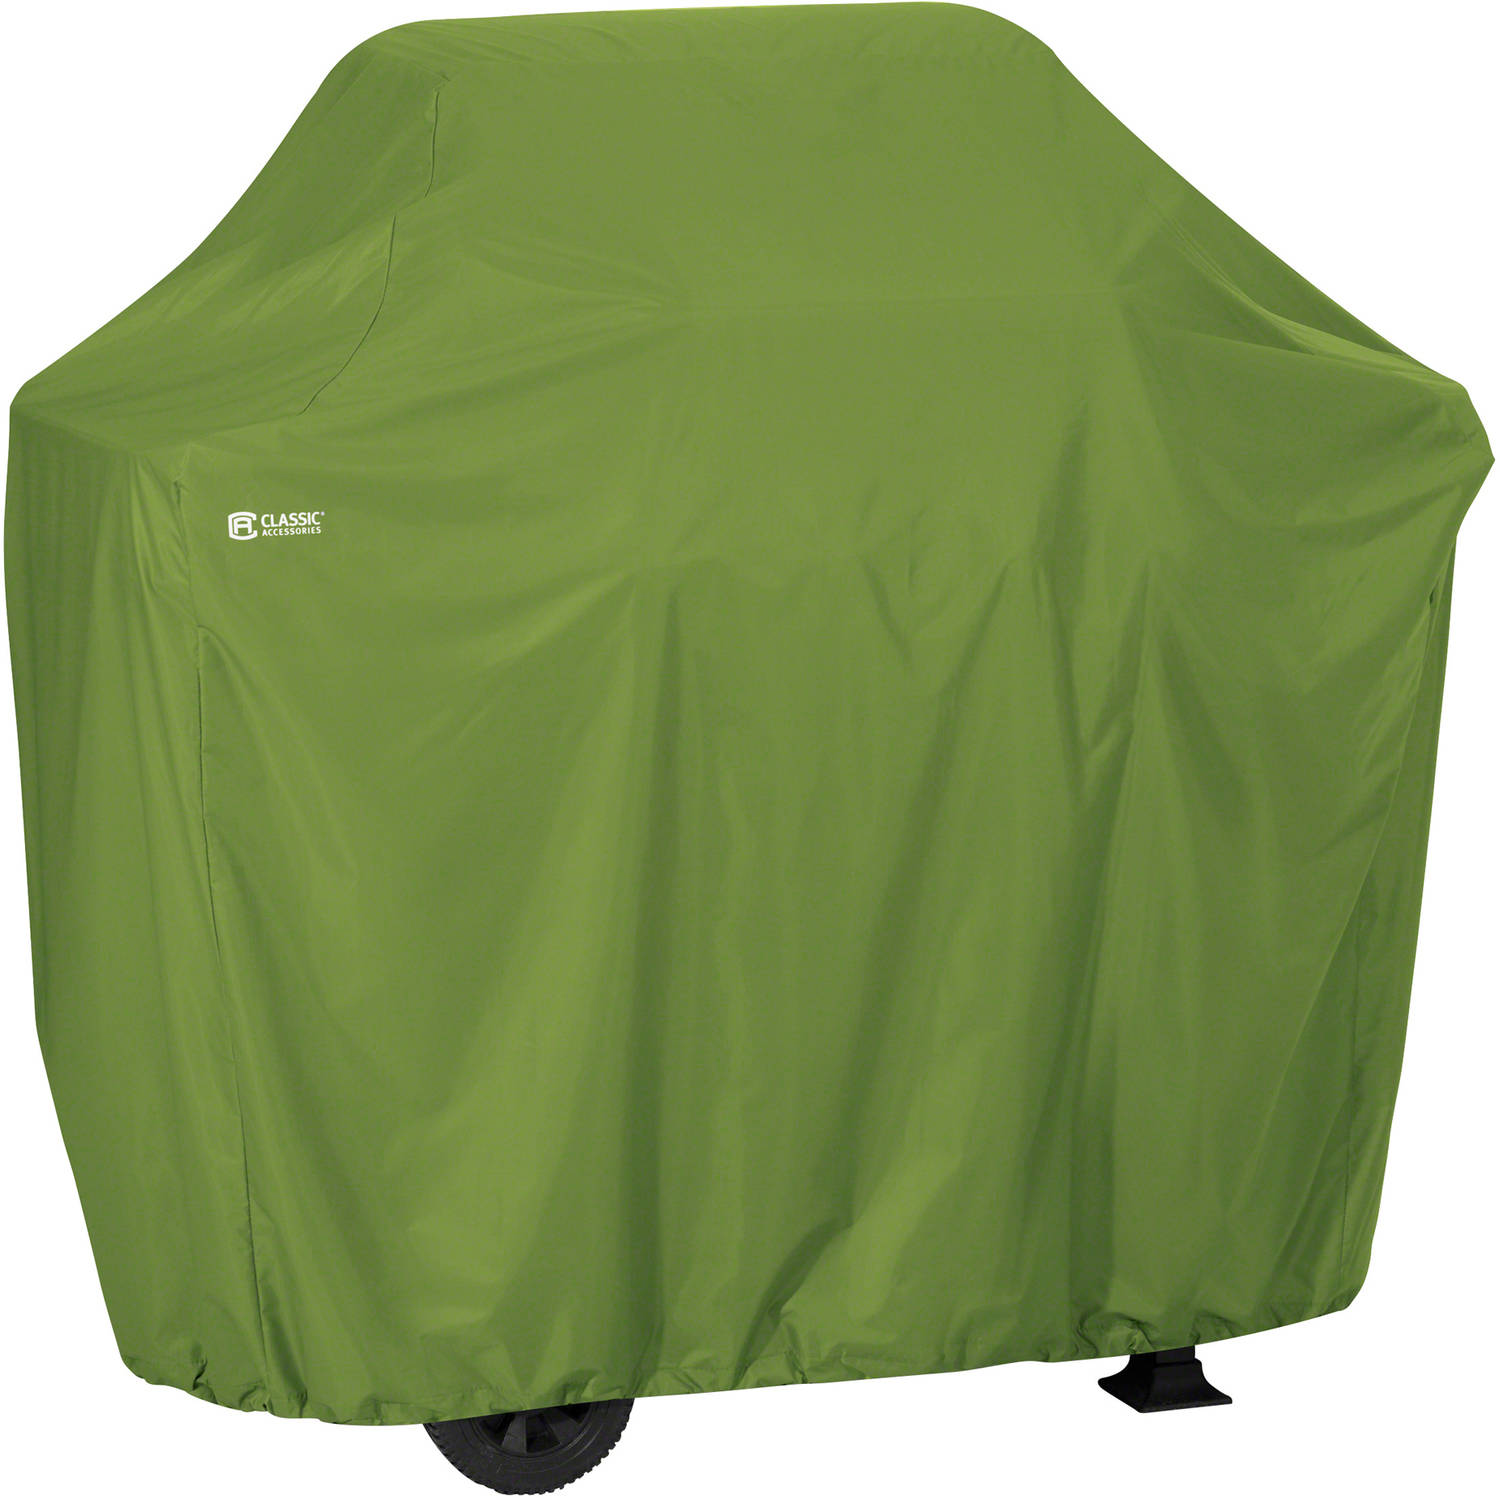 Classic Accessories Sodo BBQ Grill Cover, Herb